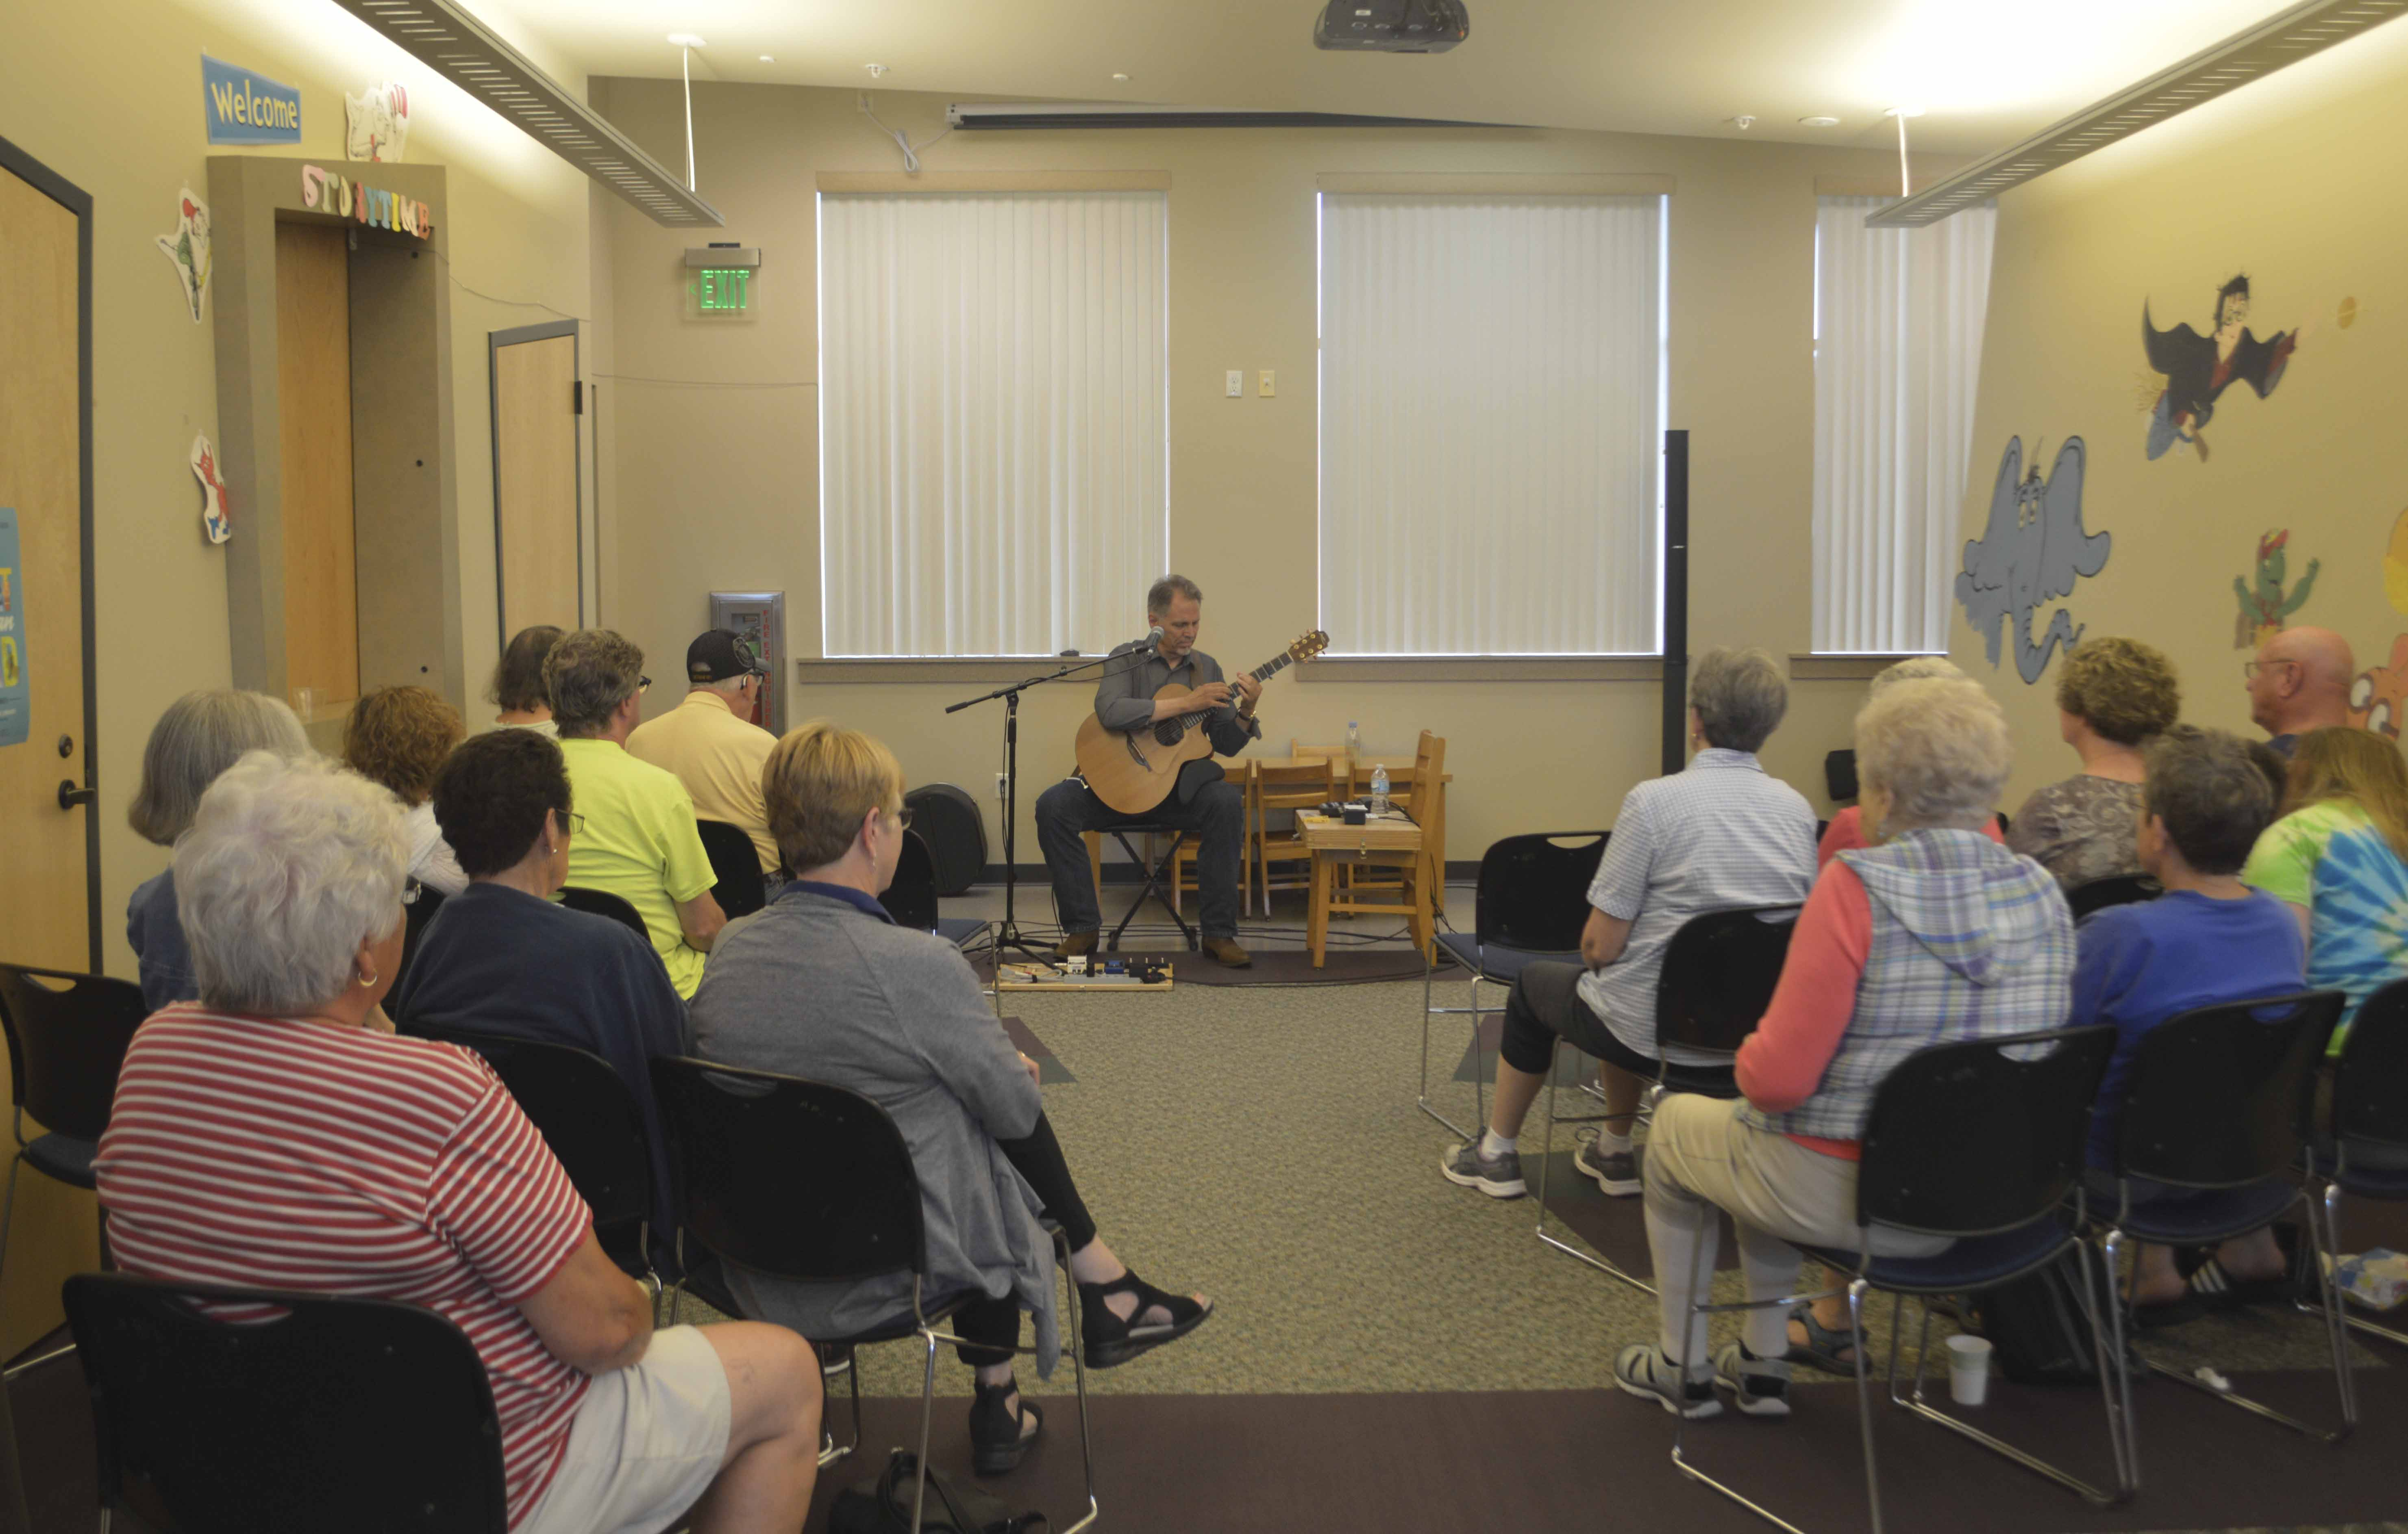 On Thursday, June 28, Jerry Barlow performed at the Monticello Public Library. The concert, which was free to the public, drew in a crowd. (Photos by Hannah Gray)